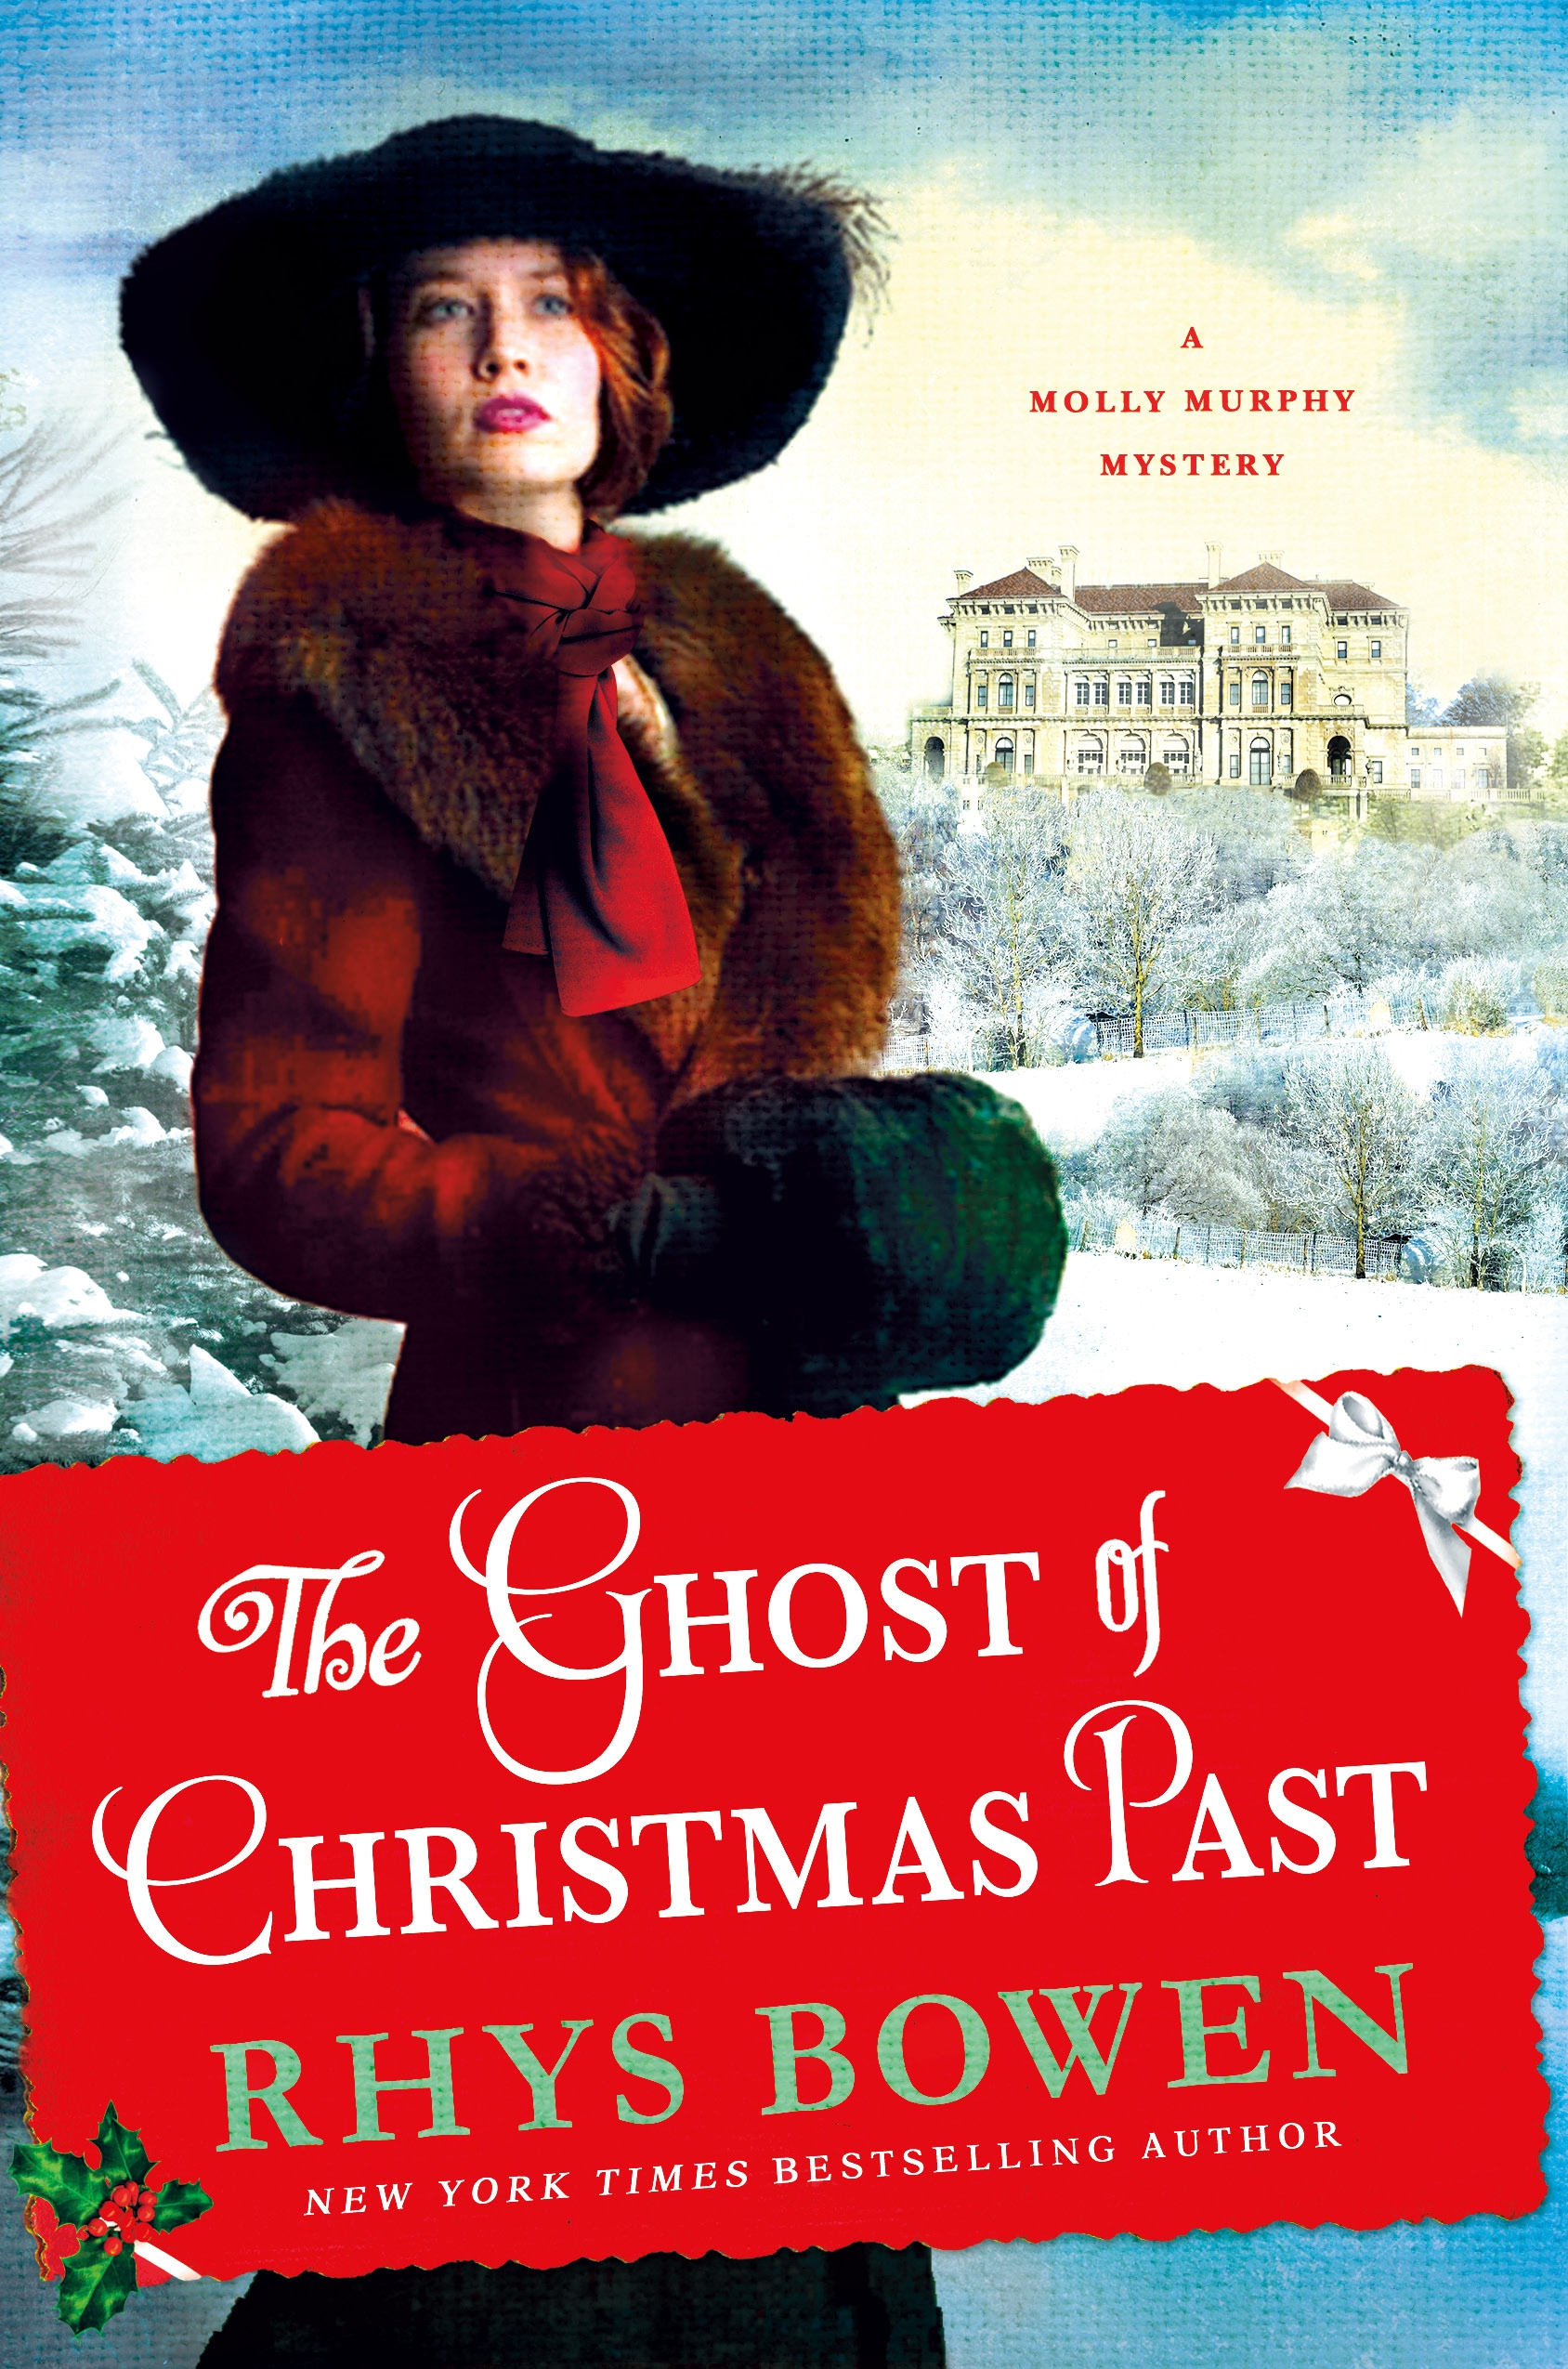 The Ghost of Christmas Past A Molly Murphy Mystery cover image